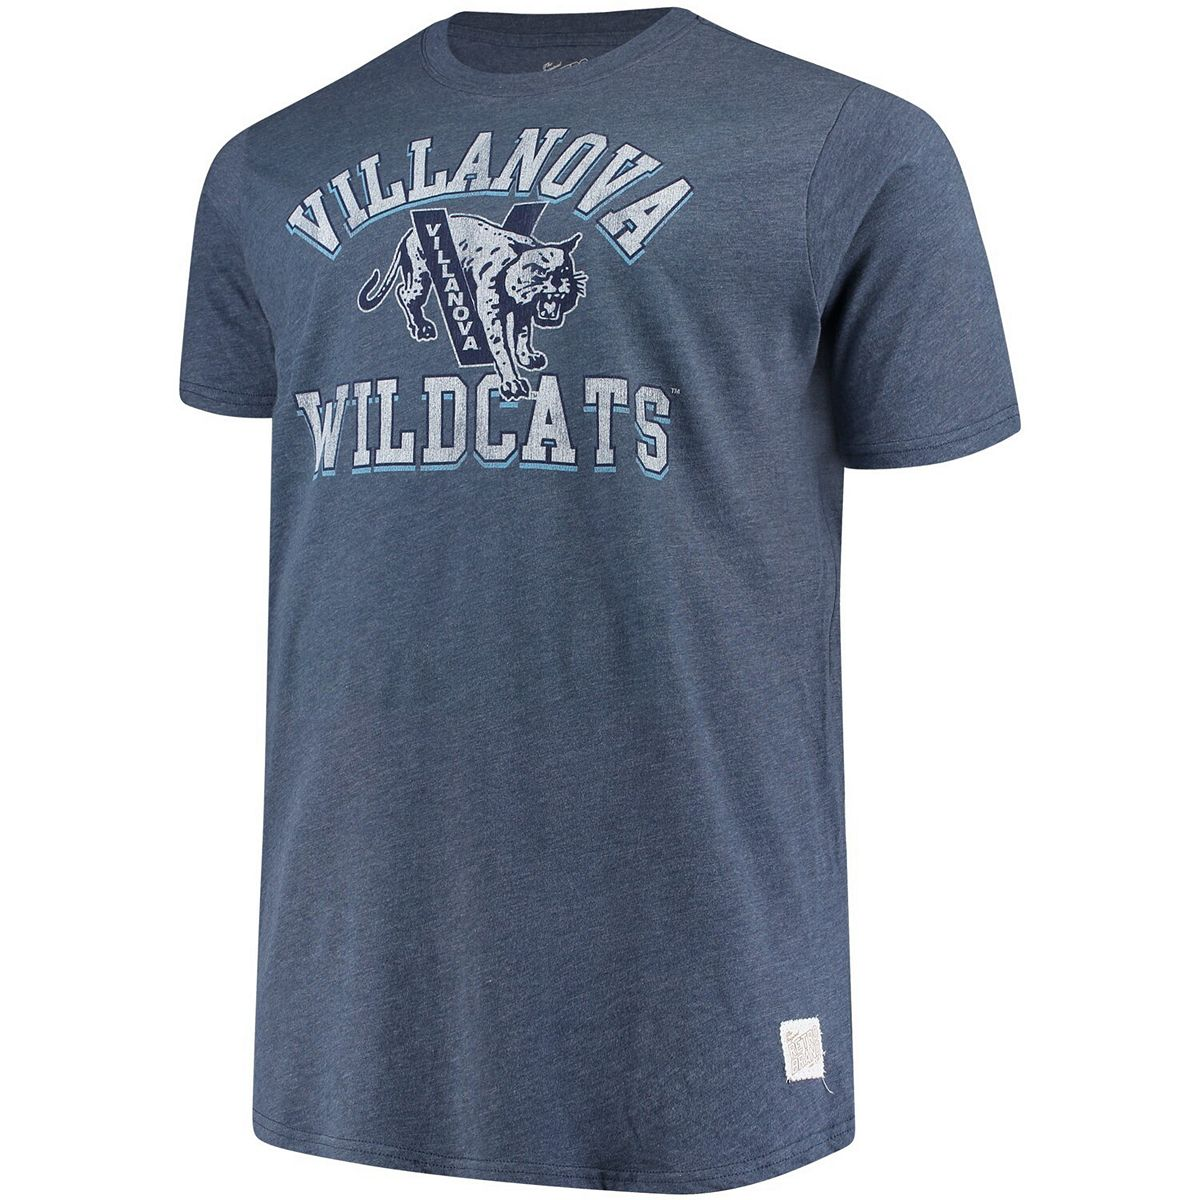 Men's Original Retro Brand Navy Villanova Wildcats Big & Tall Mock Twist T-Shirt rpwlu